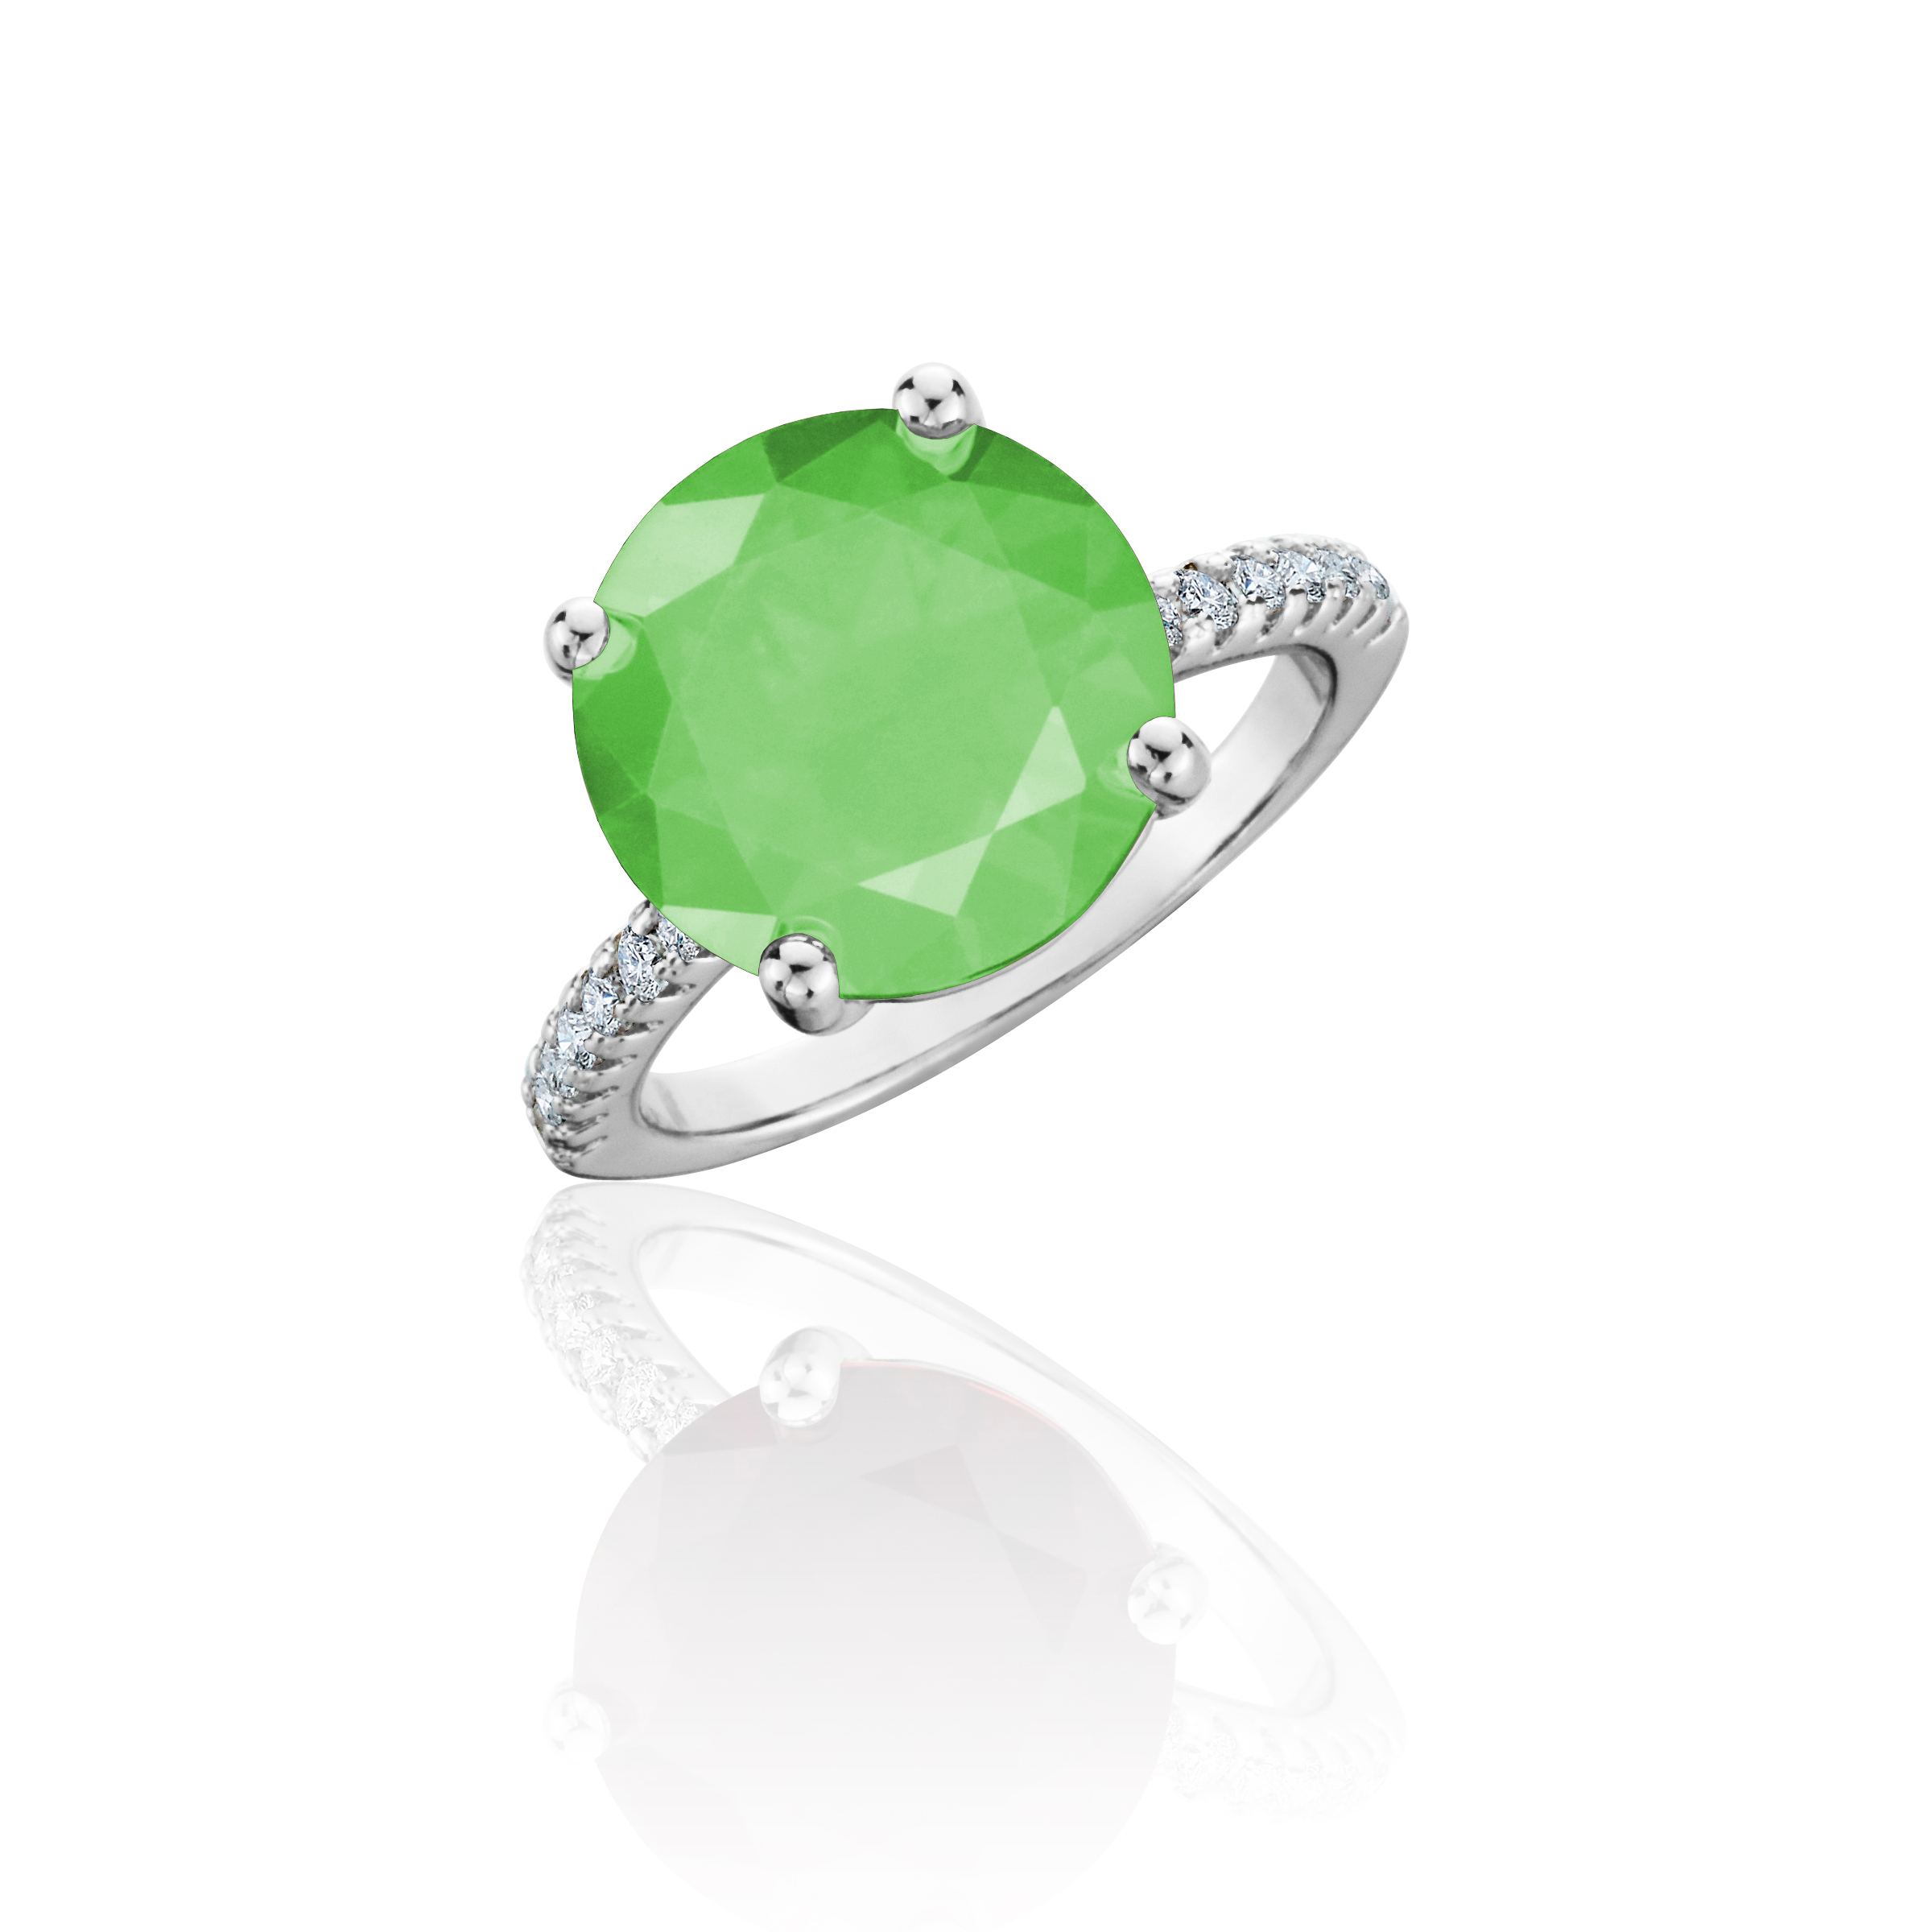 Green Gemstone with CZ Accents Round Ring in 18K White Gold Over Brass